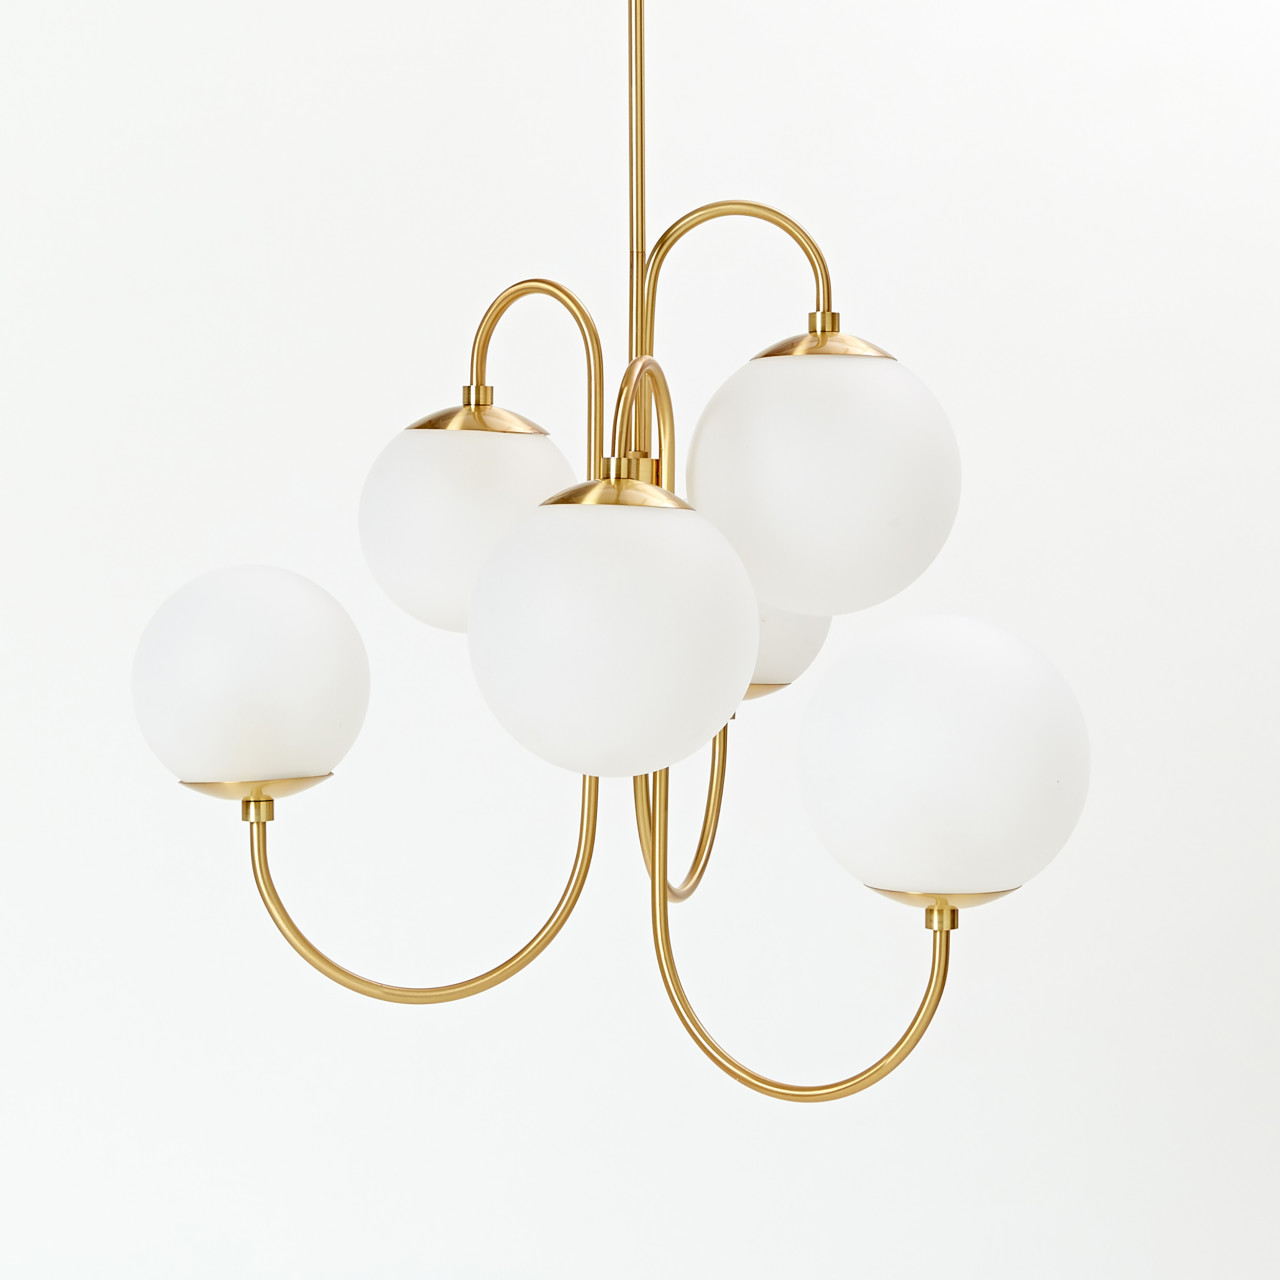 Modern Interior Lighting Design with West Elm Chandelier: West Elm Chandelier | Capiz Lighting Fixtures | Glass Ball Chandelier Modern